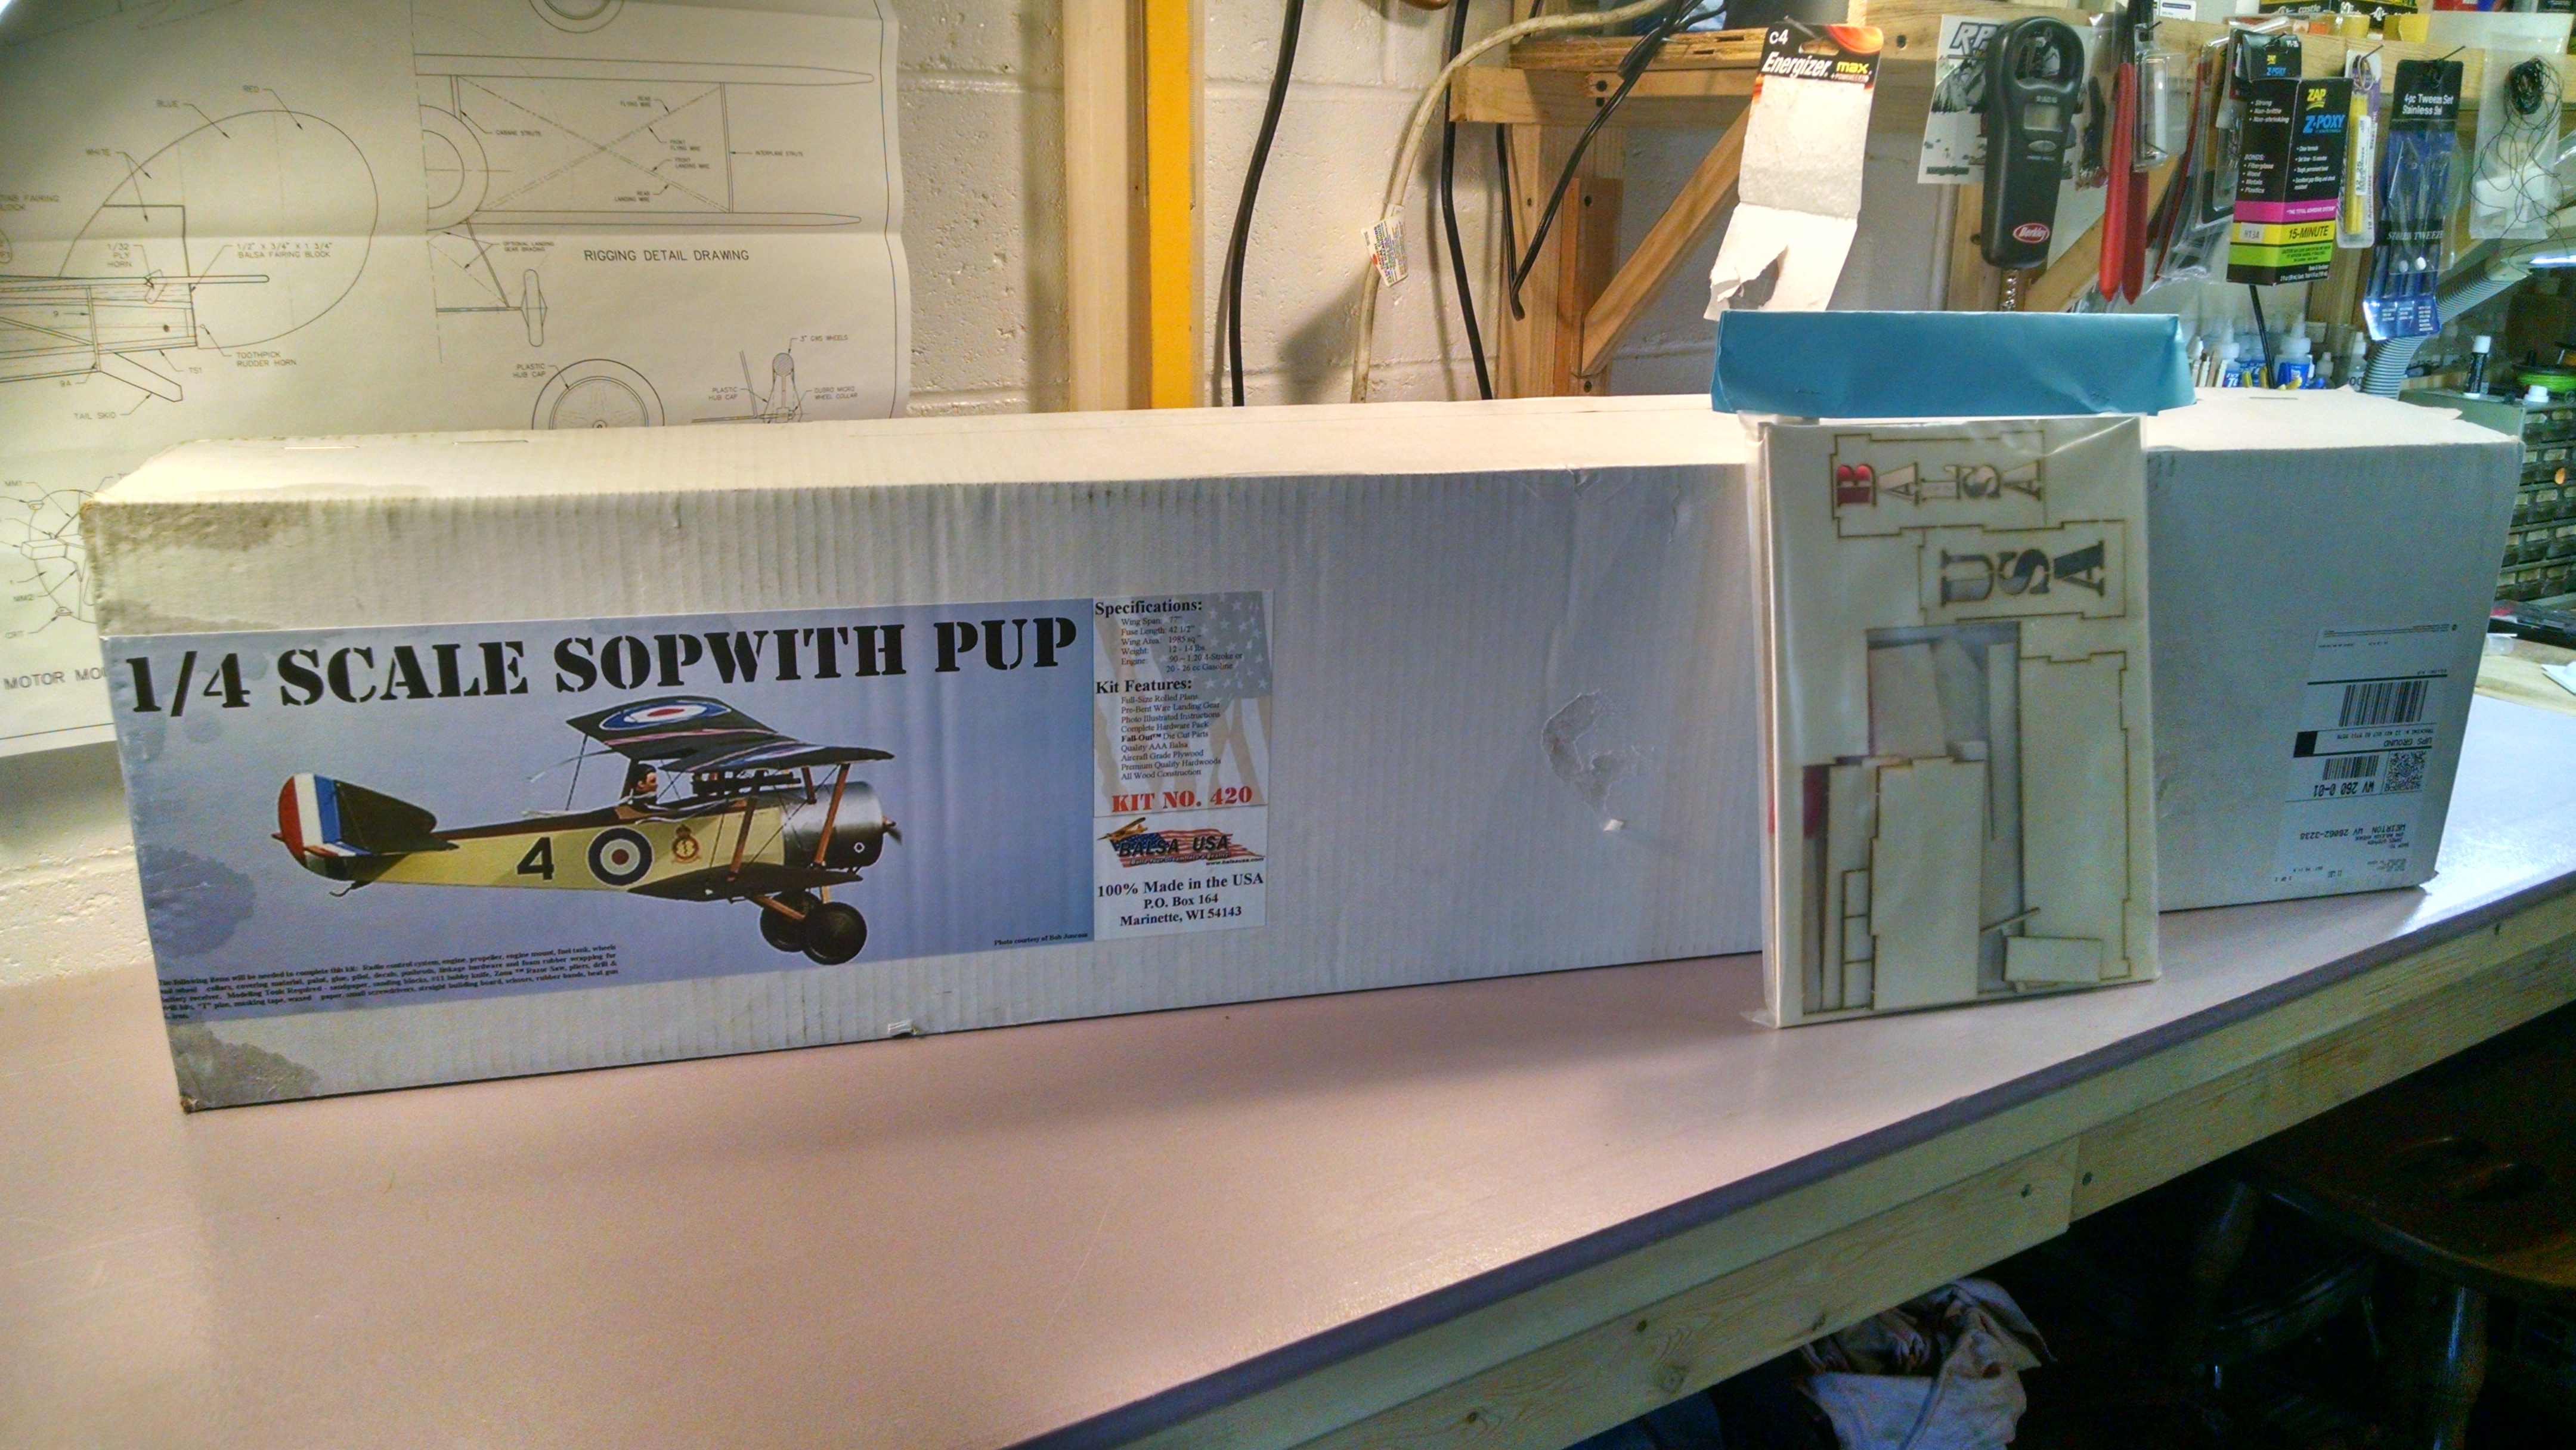 1 4 Scale Sothwith Pup Conversion Wattflyer Rc Electric Flight Old Airtronics Servos Forums Discuss Flying Jim Is Offline